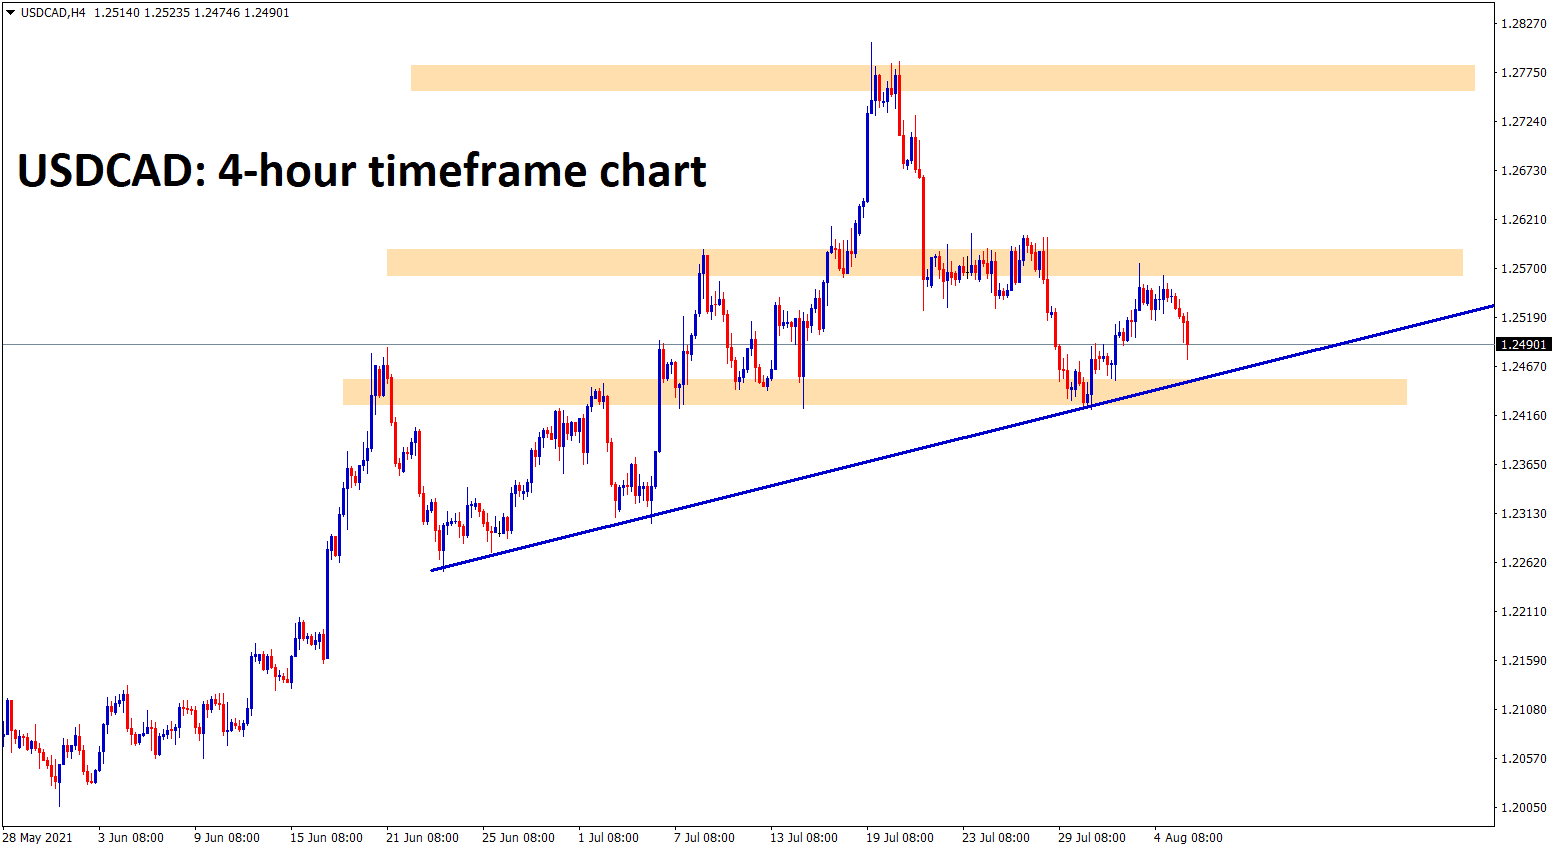 USDCAD is consolidating in an uptrend range